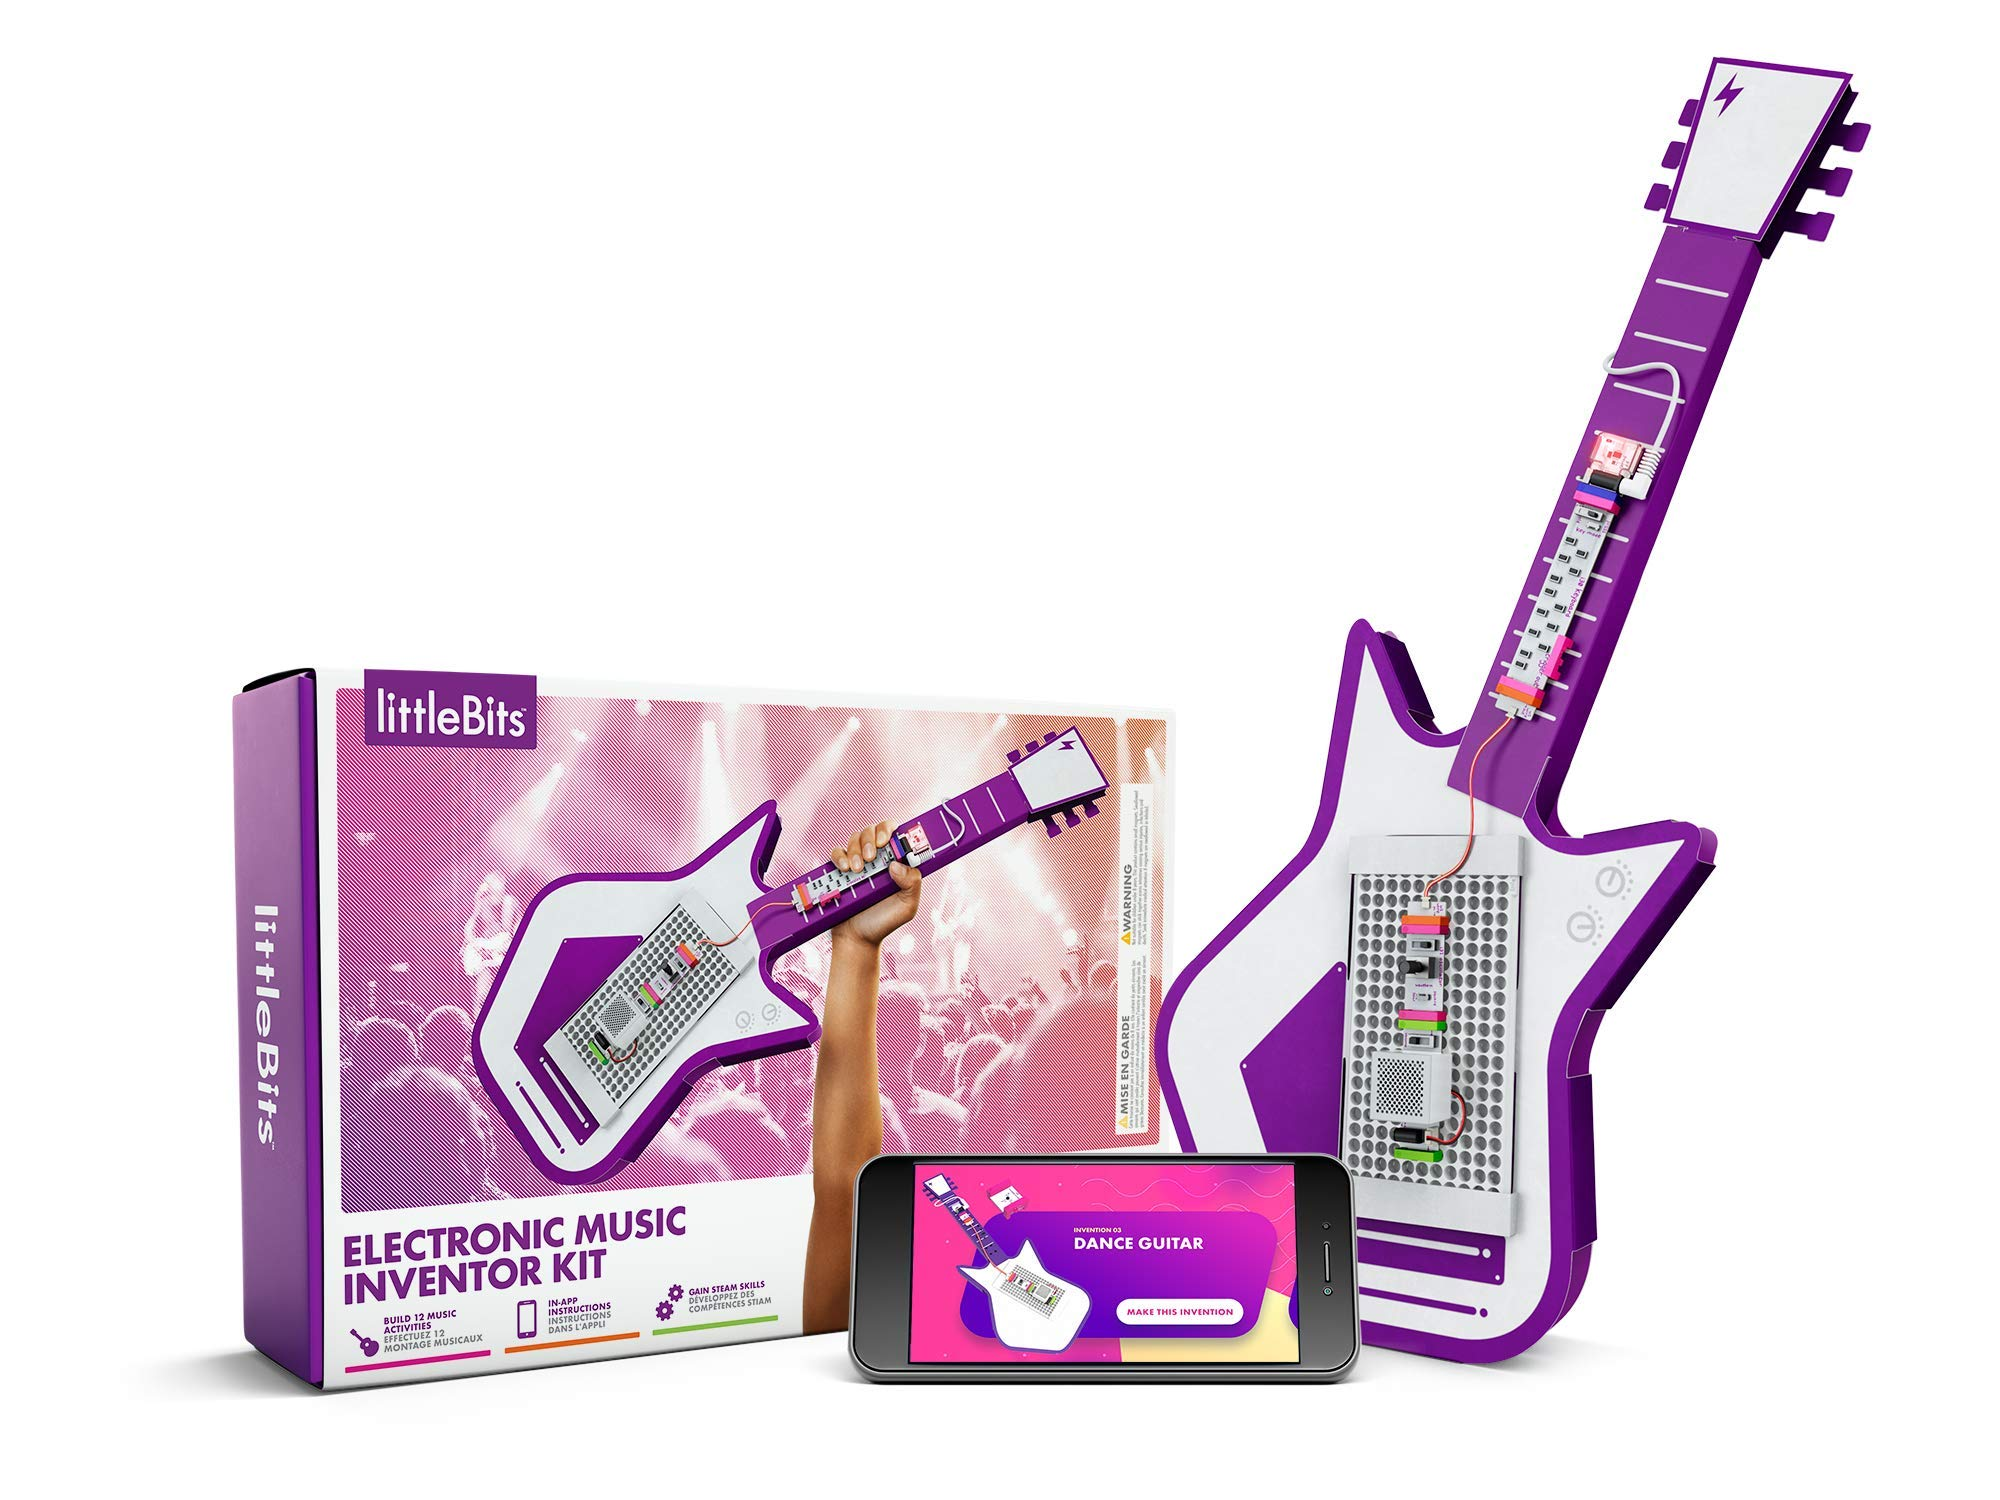 littleBits Electronic Music Inventor Kit - Build, Customize, & Play Your Own Educational & Fun High-Tech Instruments! by littleBits